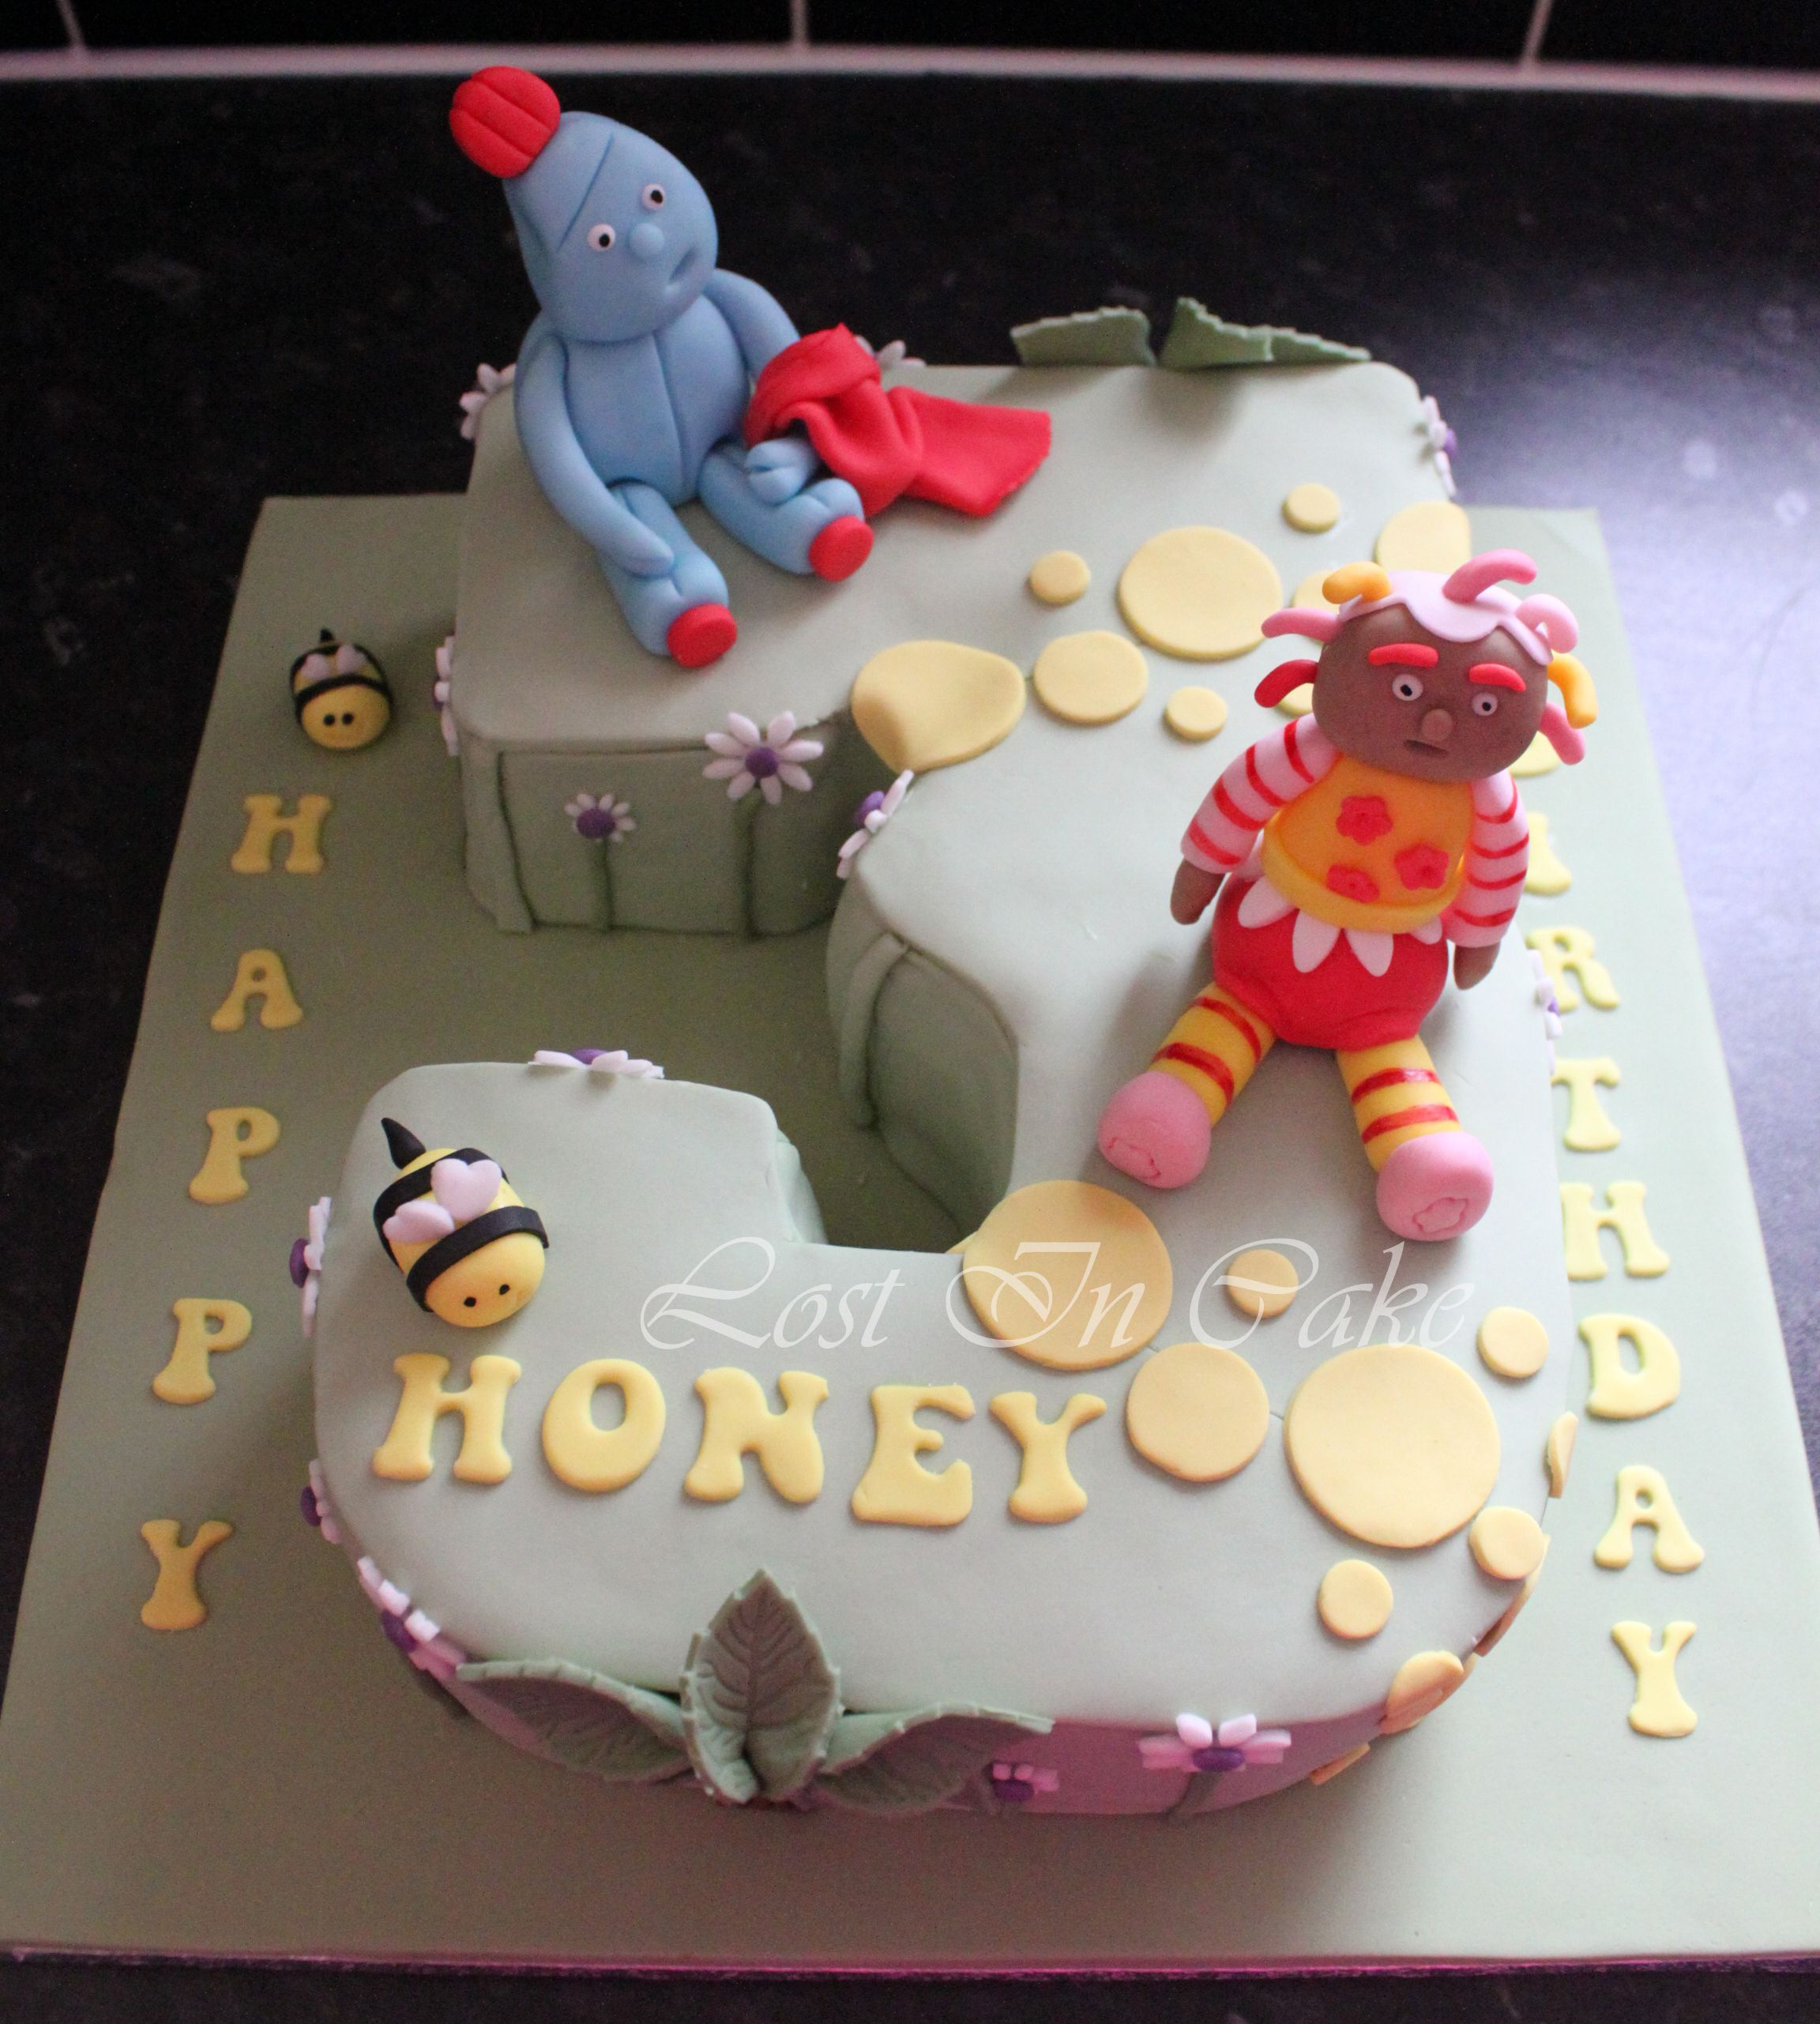 In The Night Garden Number 3 Shaped Cake